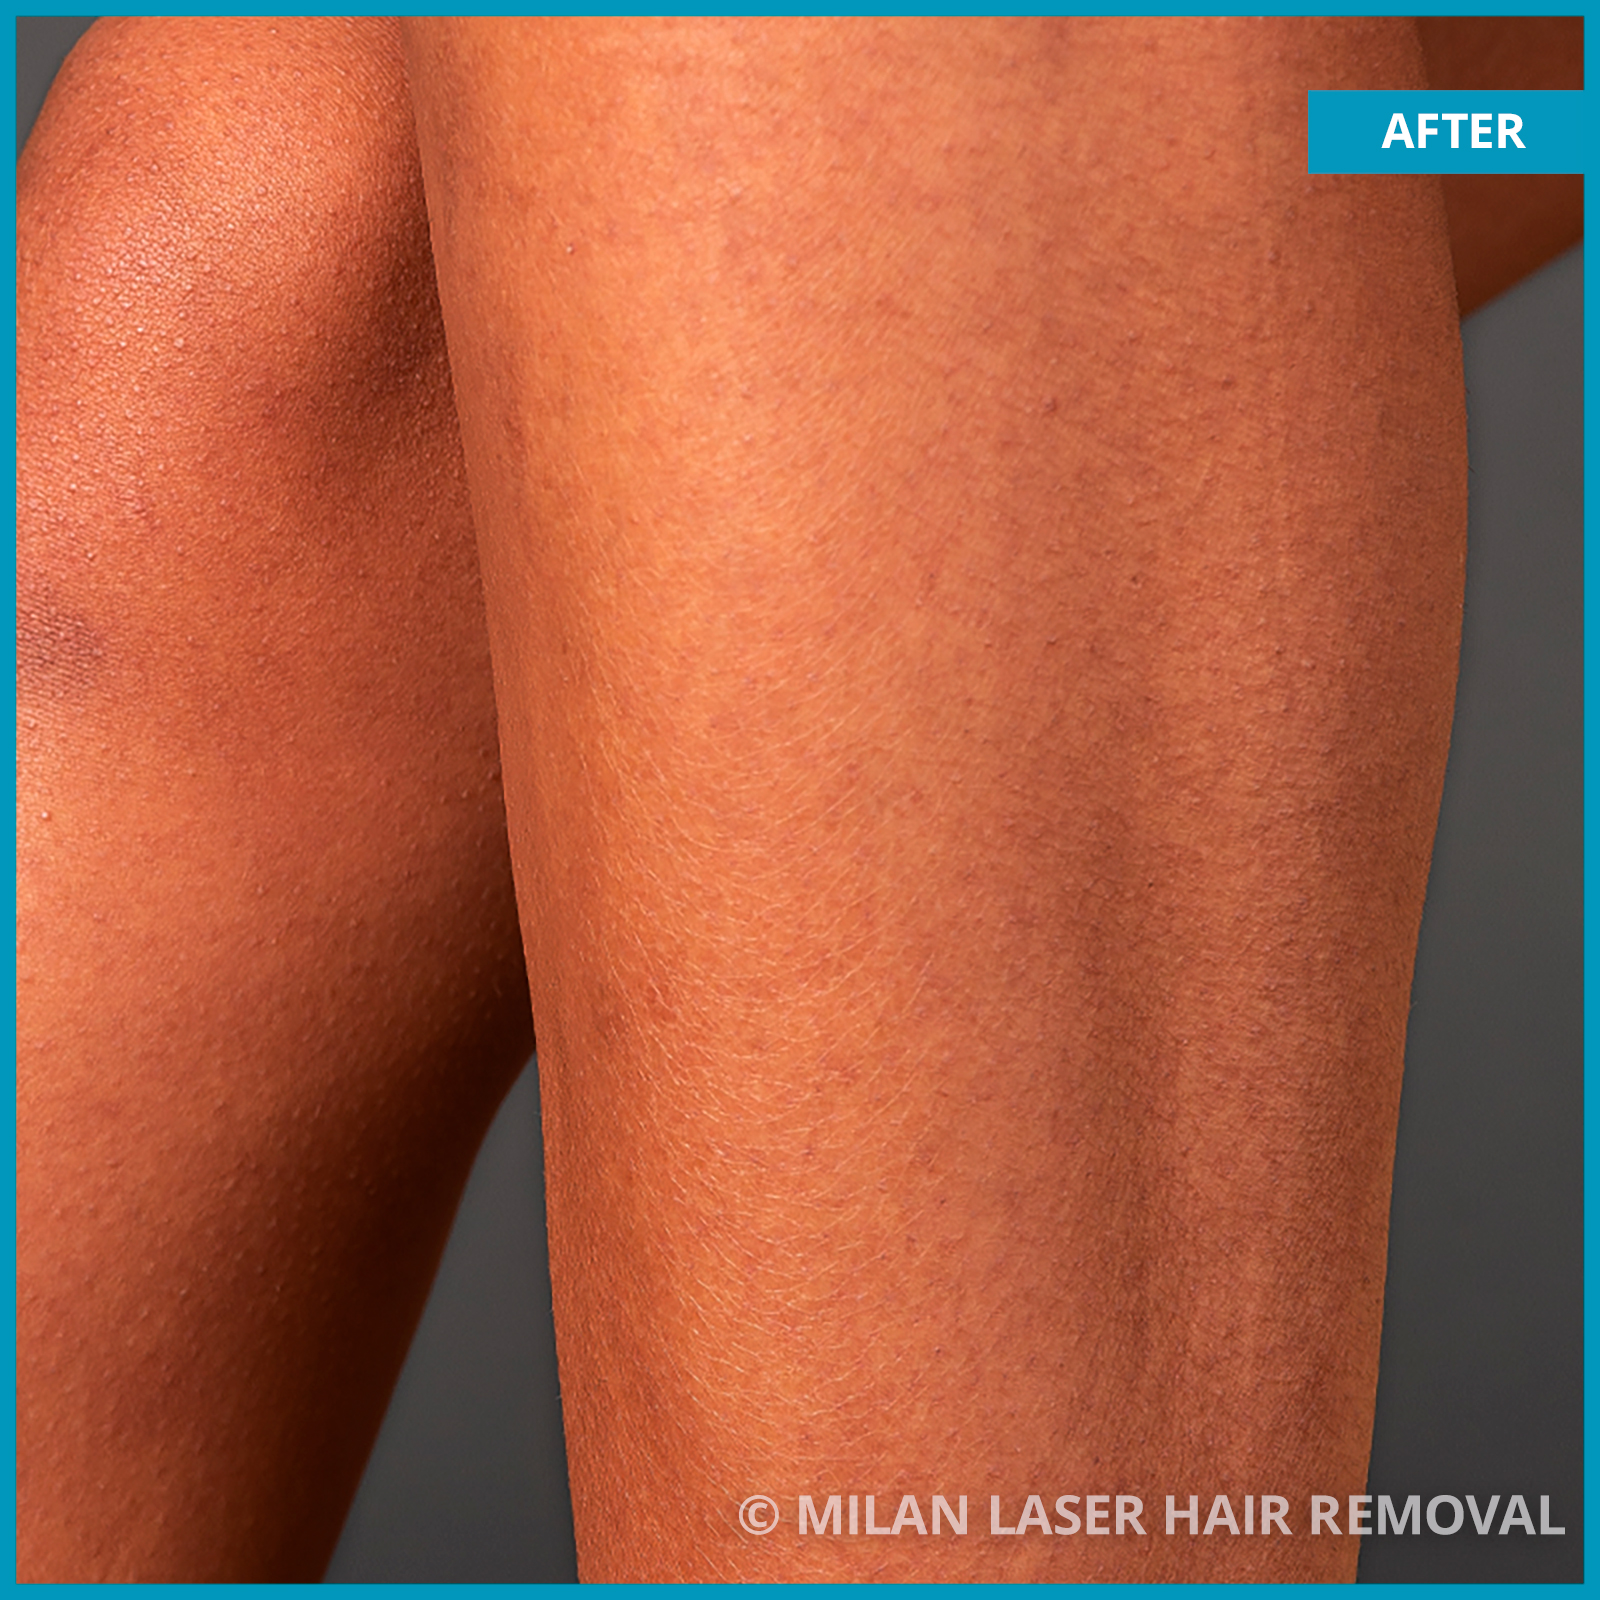 Images of Legs and Feet Before And After Laser Hair Removal